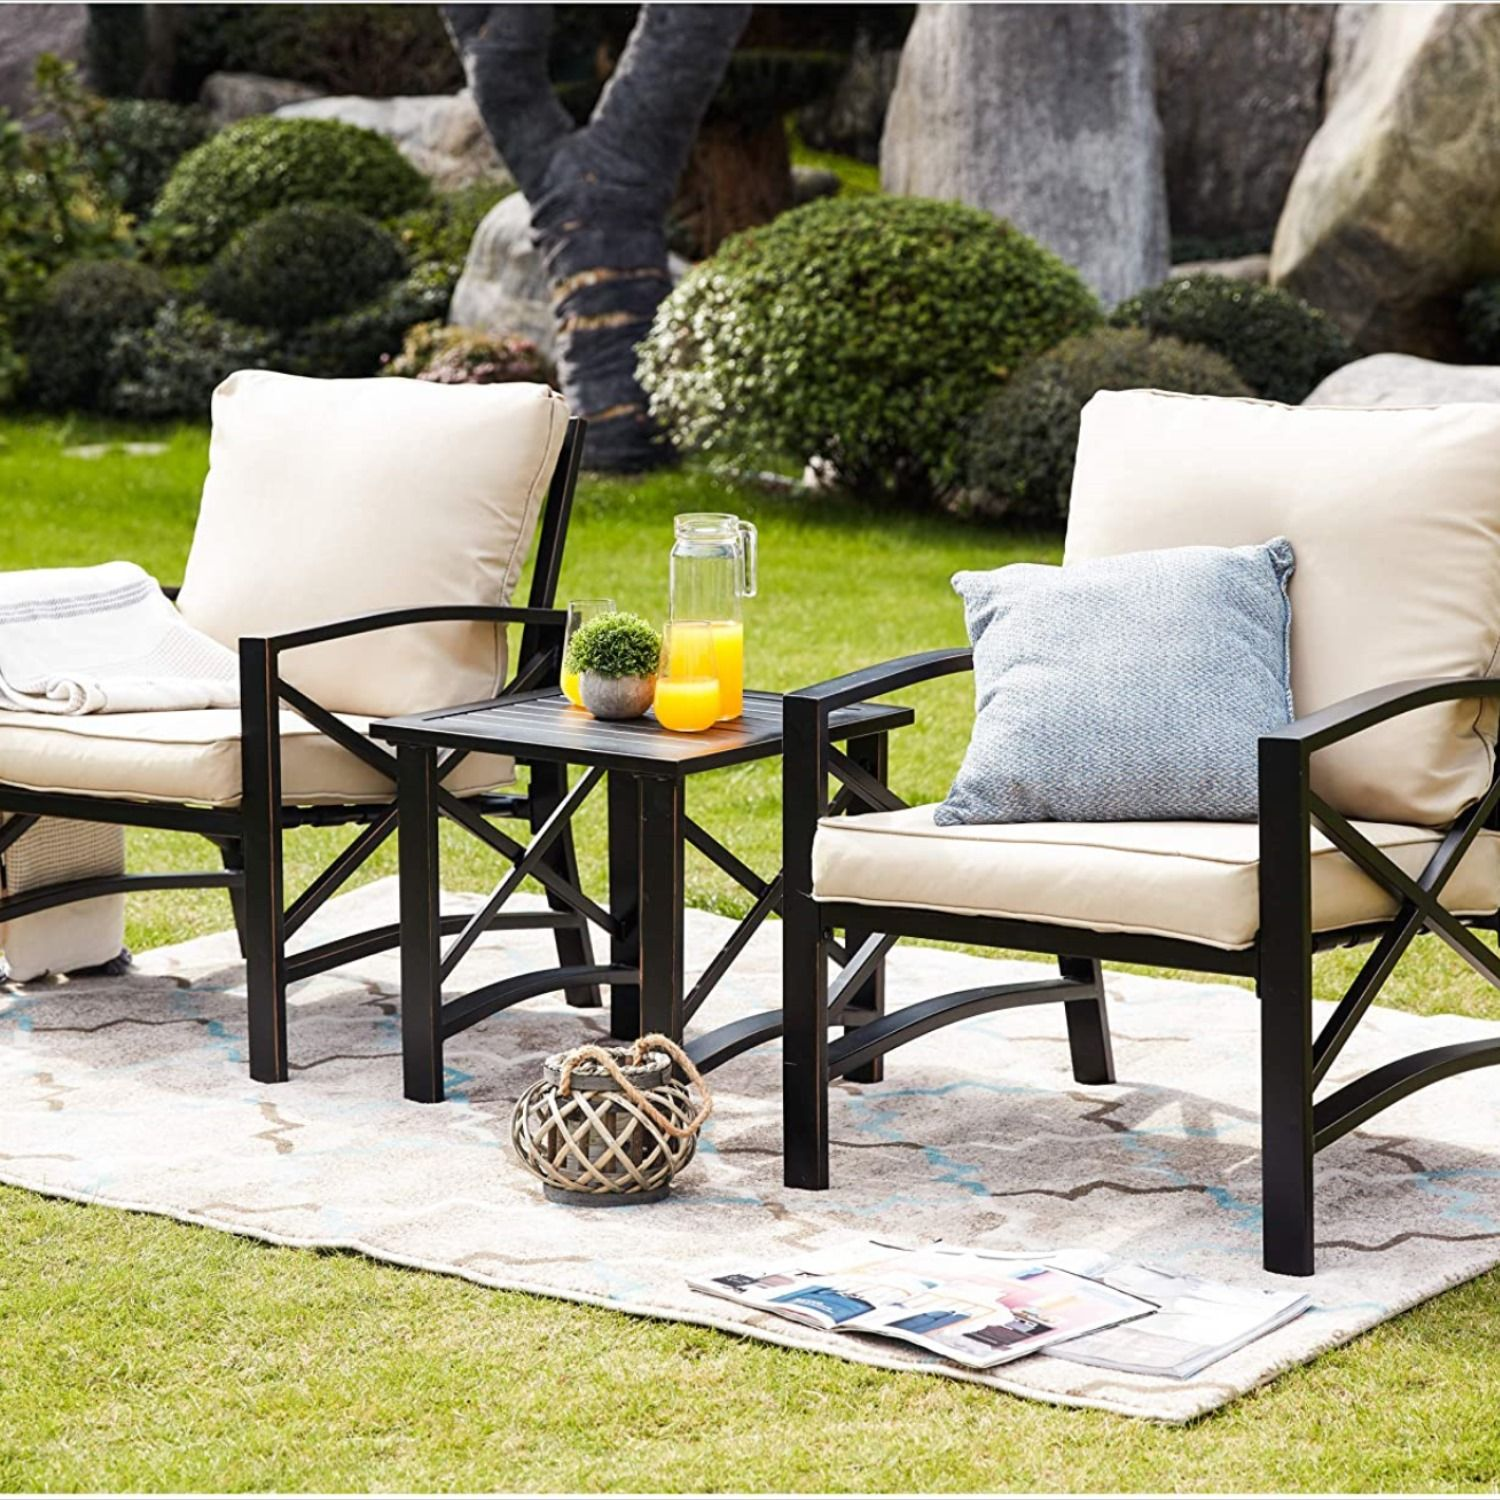 Lokatse Home 3 Piece Patio Conversation Set Outdoor Furniture With Coffee Table Chair Conversation Set Patio Patio Lounge Furniture Deep Seating